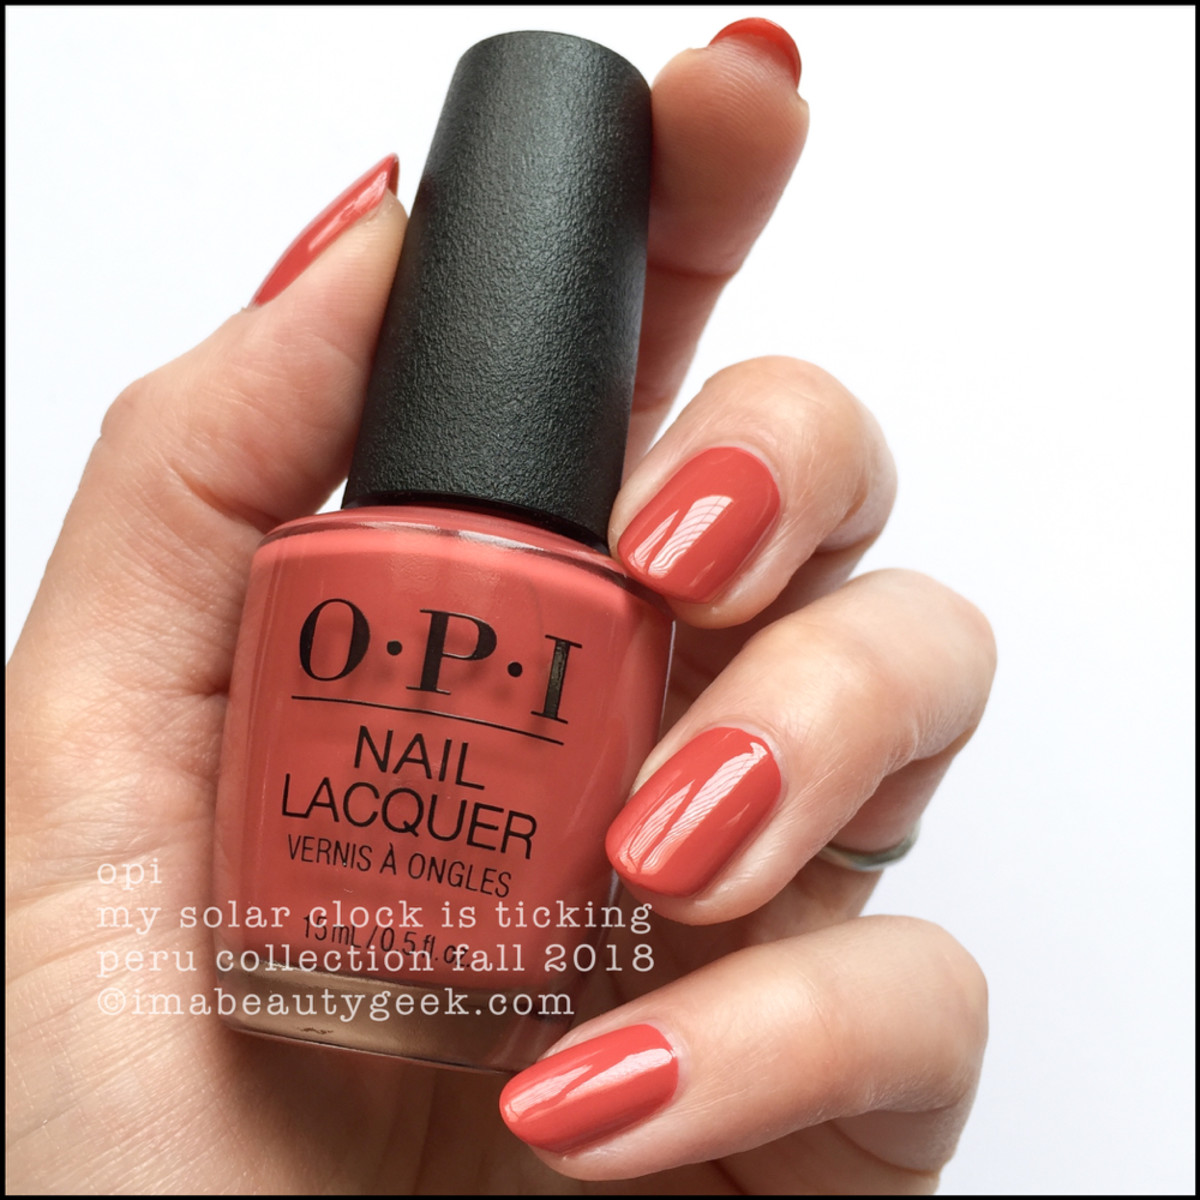 OPI My Solar Clock Is Ticking _ OPI Peru Collection Fall 2018